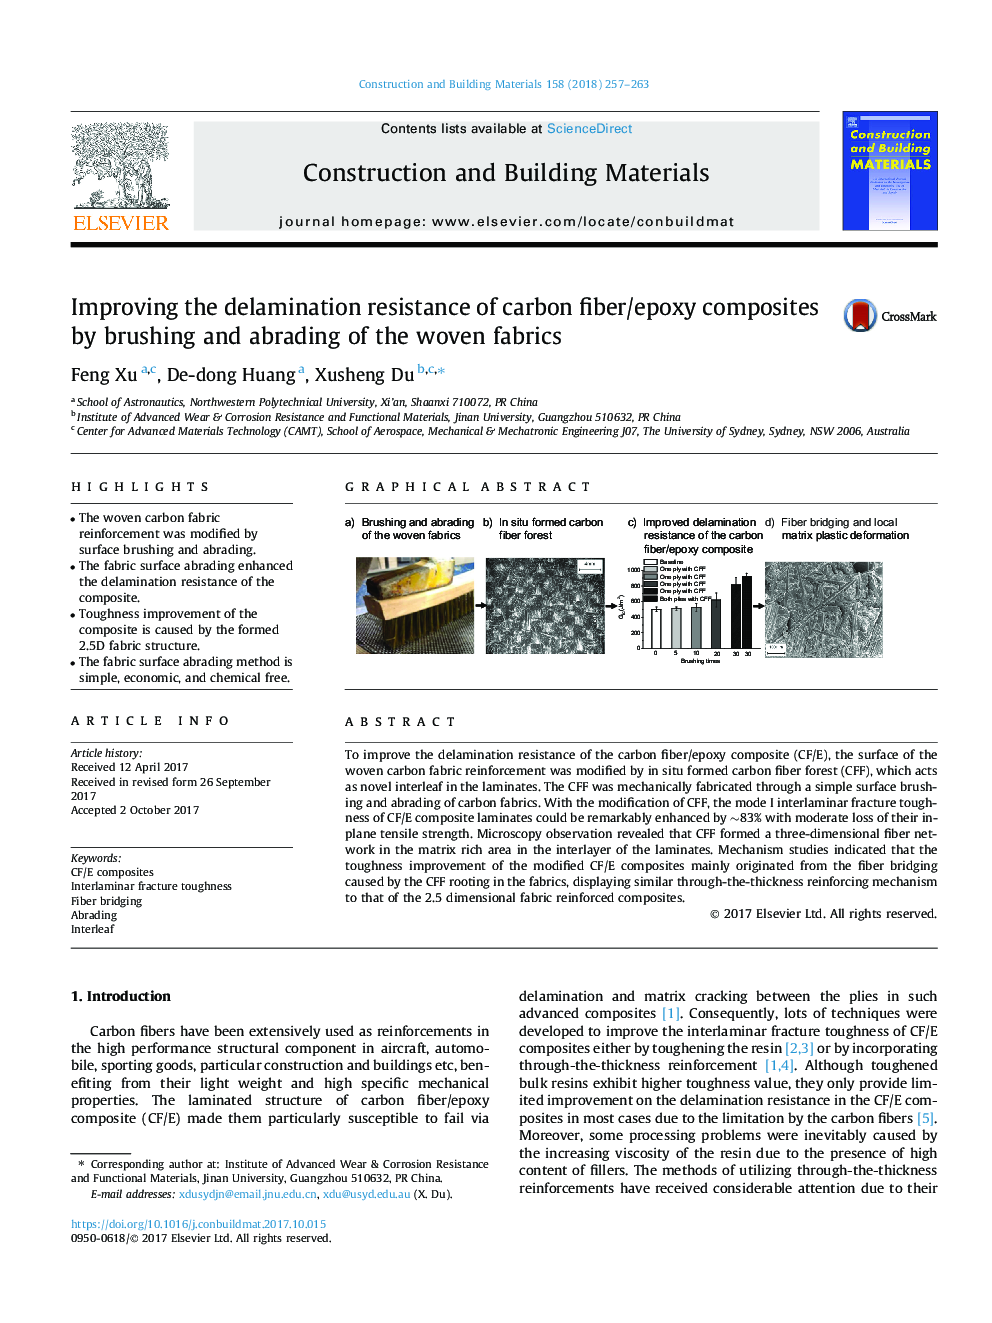 Improving the delamination resistance of carbon fiber/epoxy composites by brushing and abrading of the woven fabrics